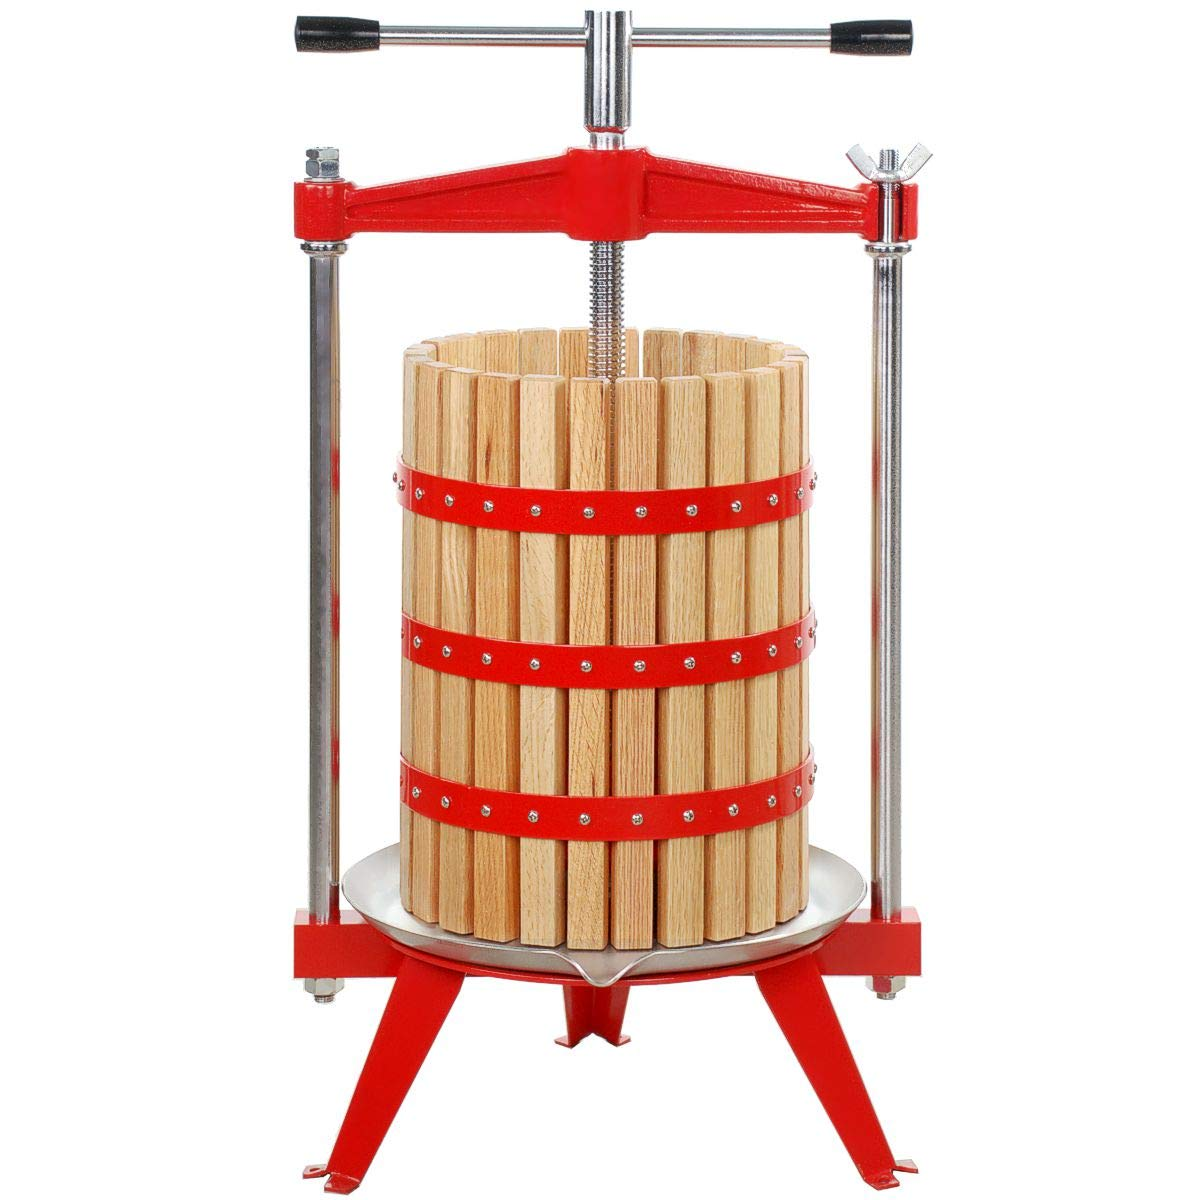 Harvest Bounty Fruit Press 5 Gallon + Wood Basket by Harvest Bounty